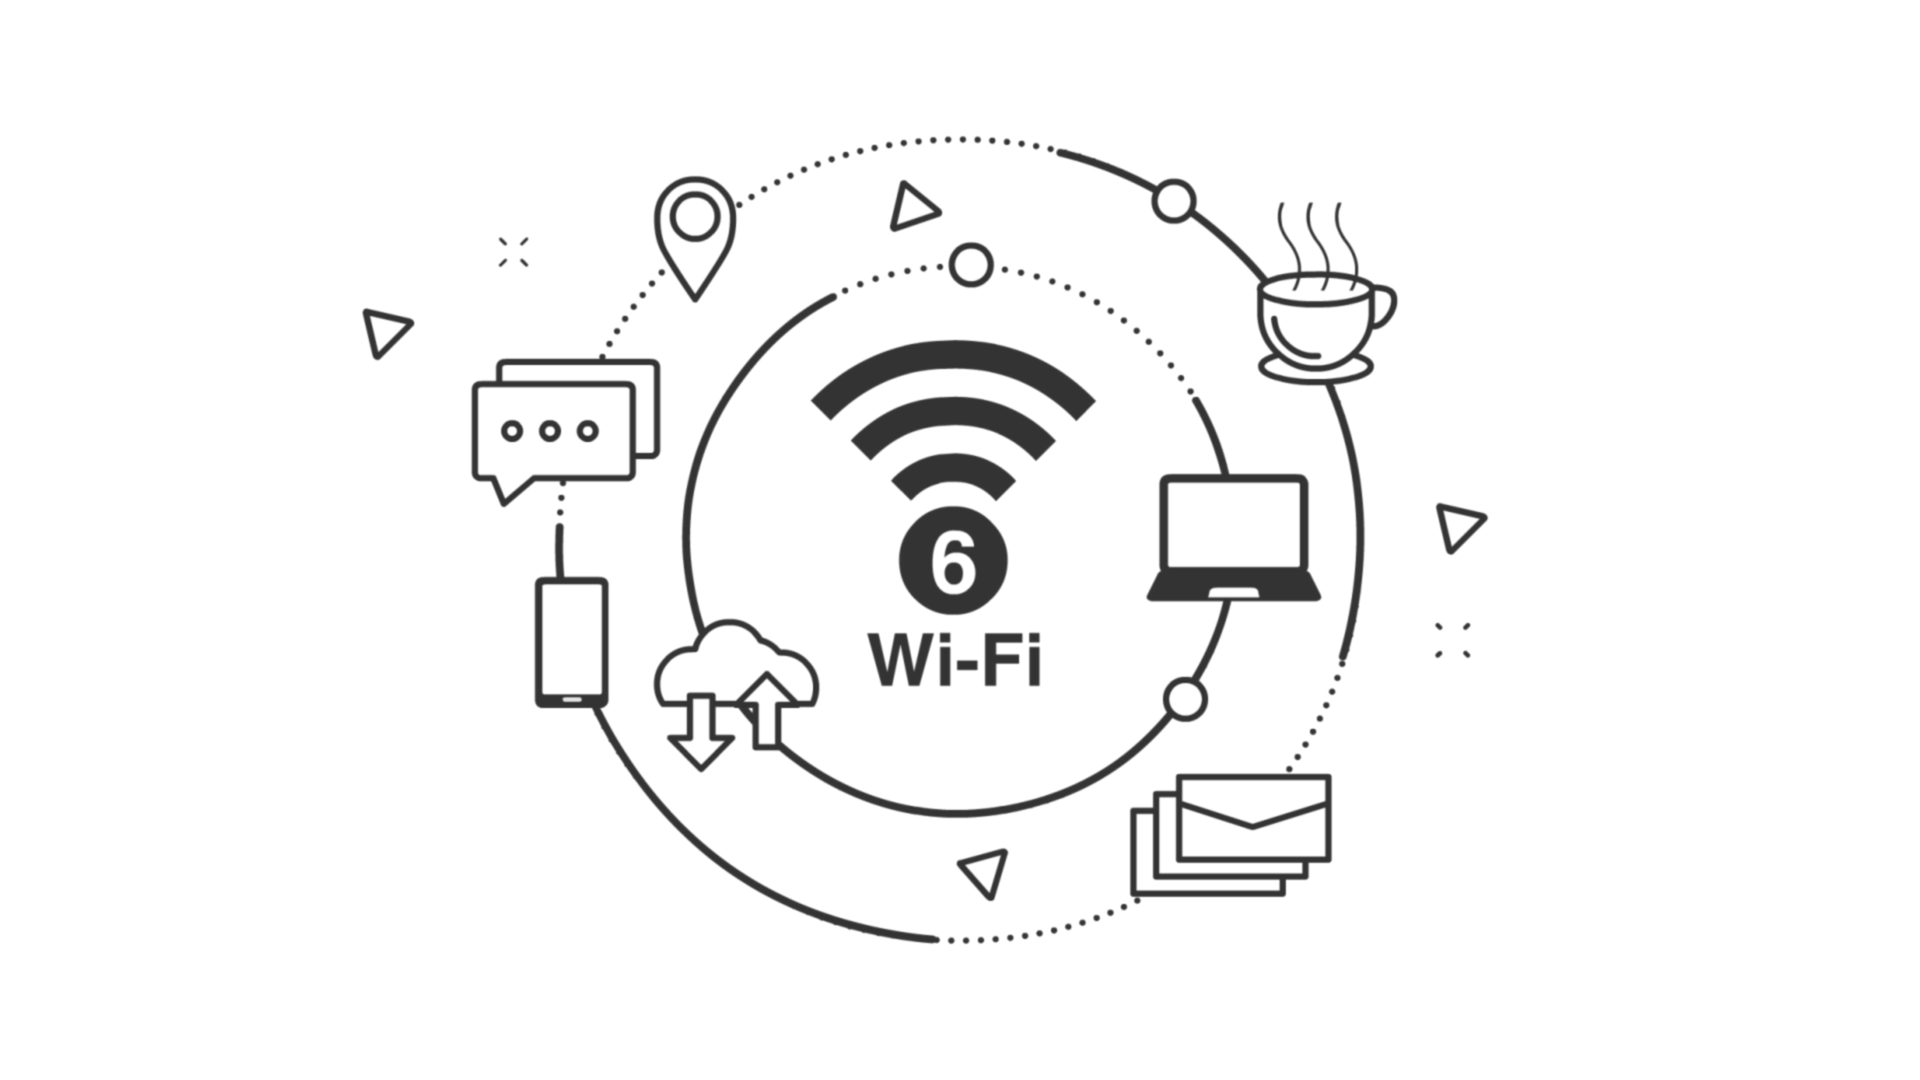 Wi-Fi 6 essentials